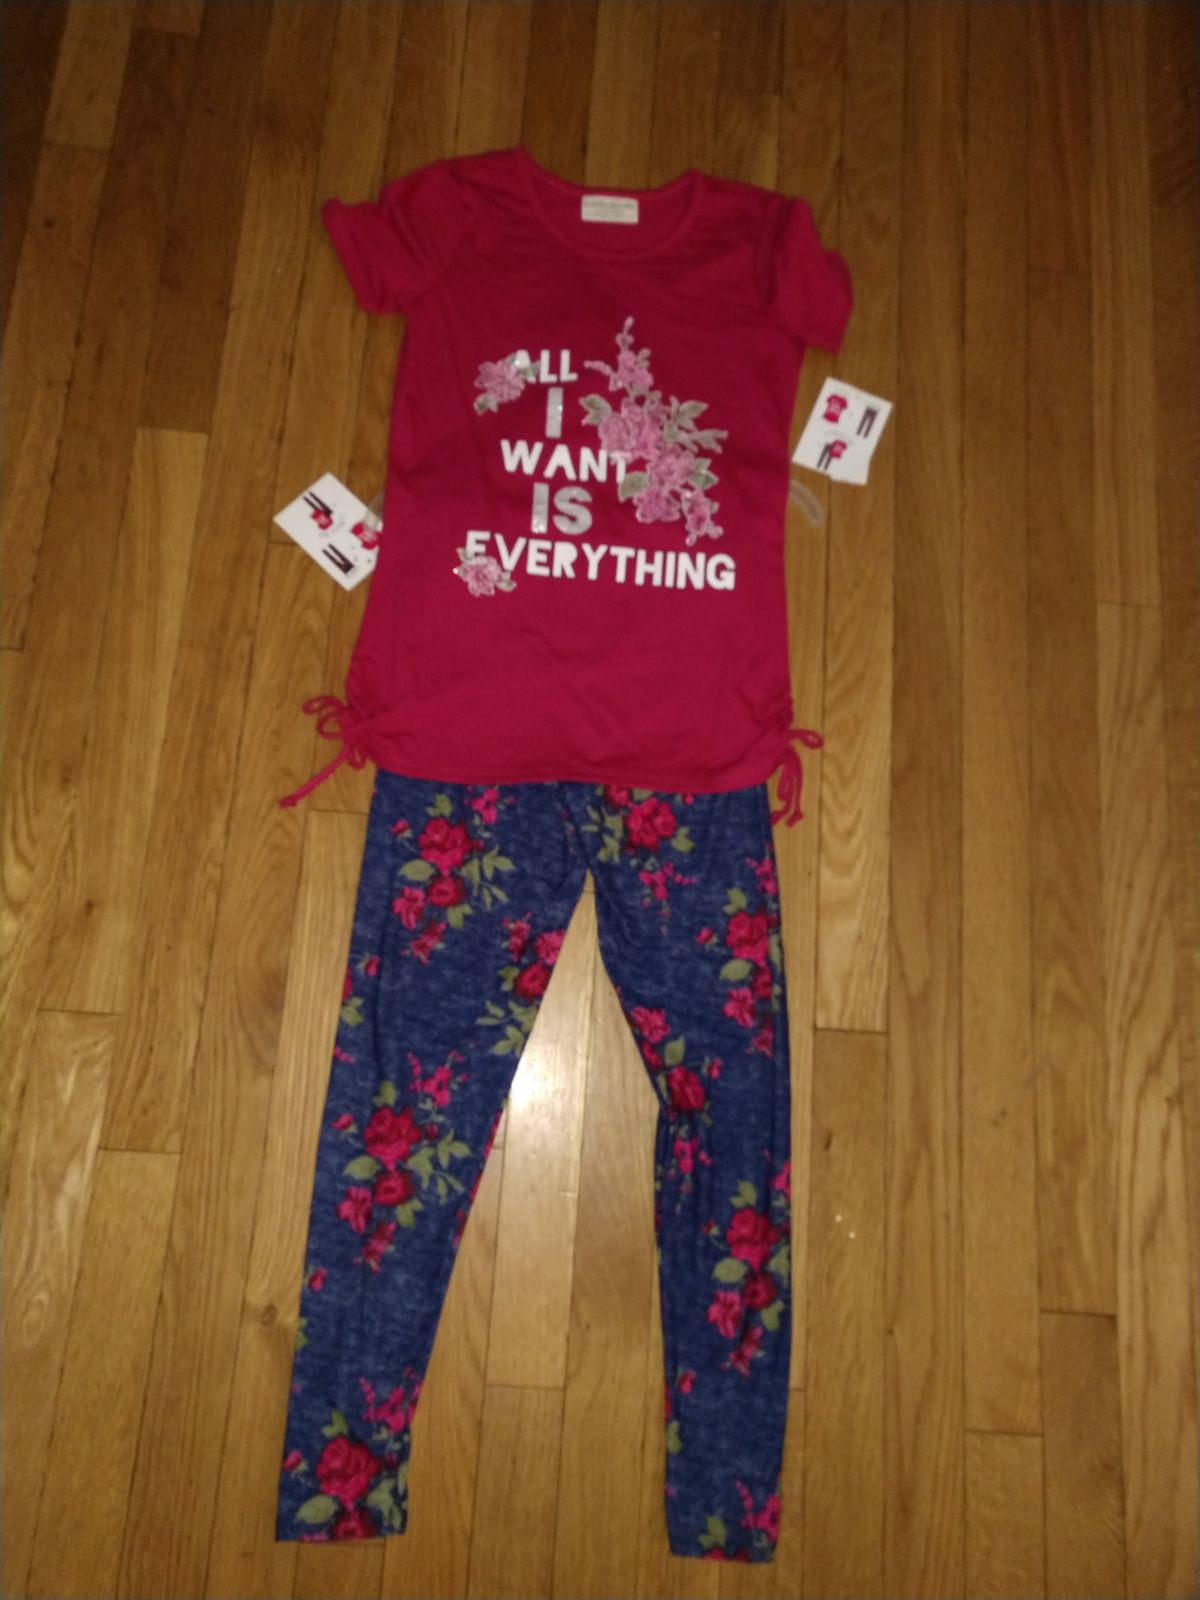 NEW Girls 2 piece outfit size 7/8